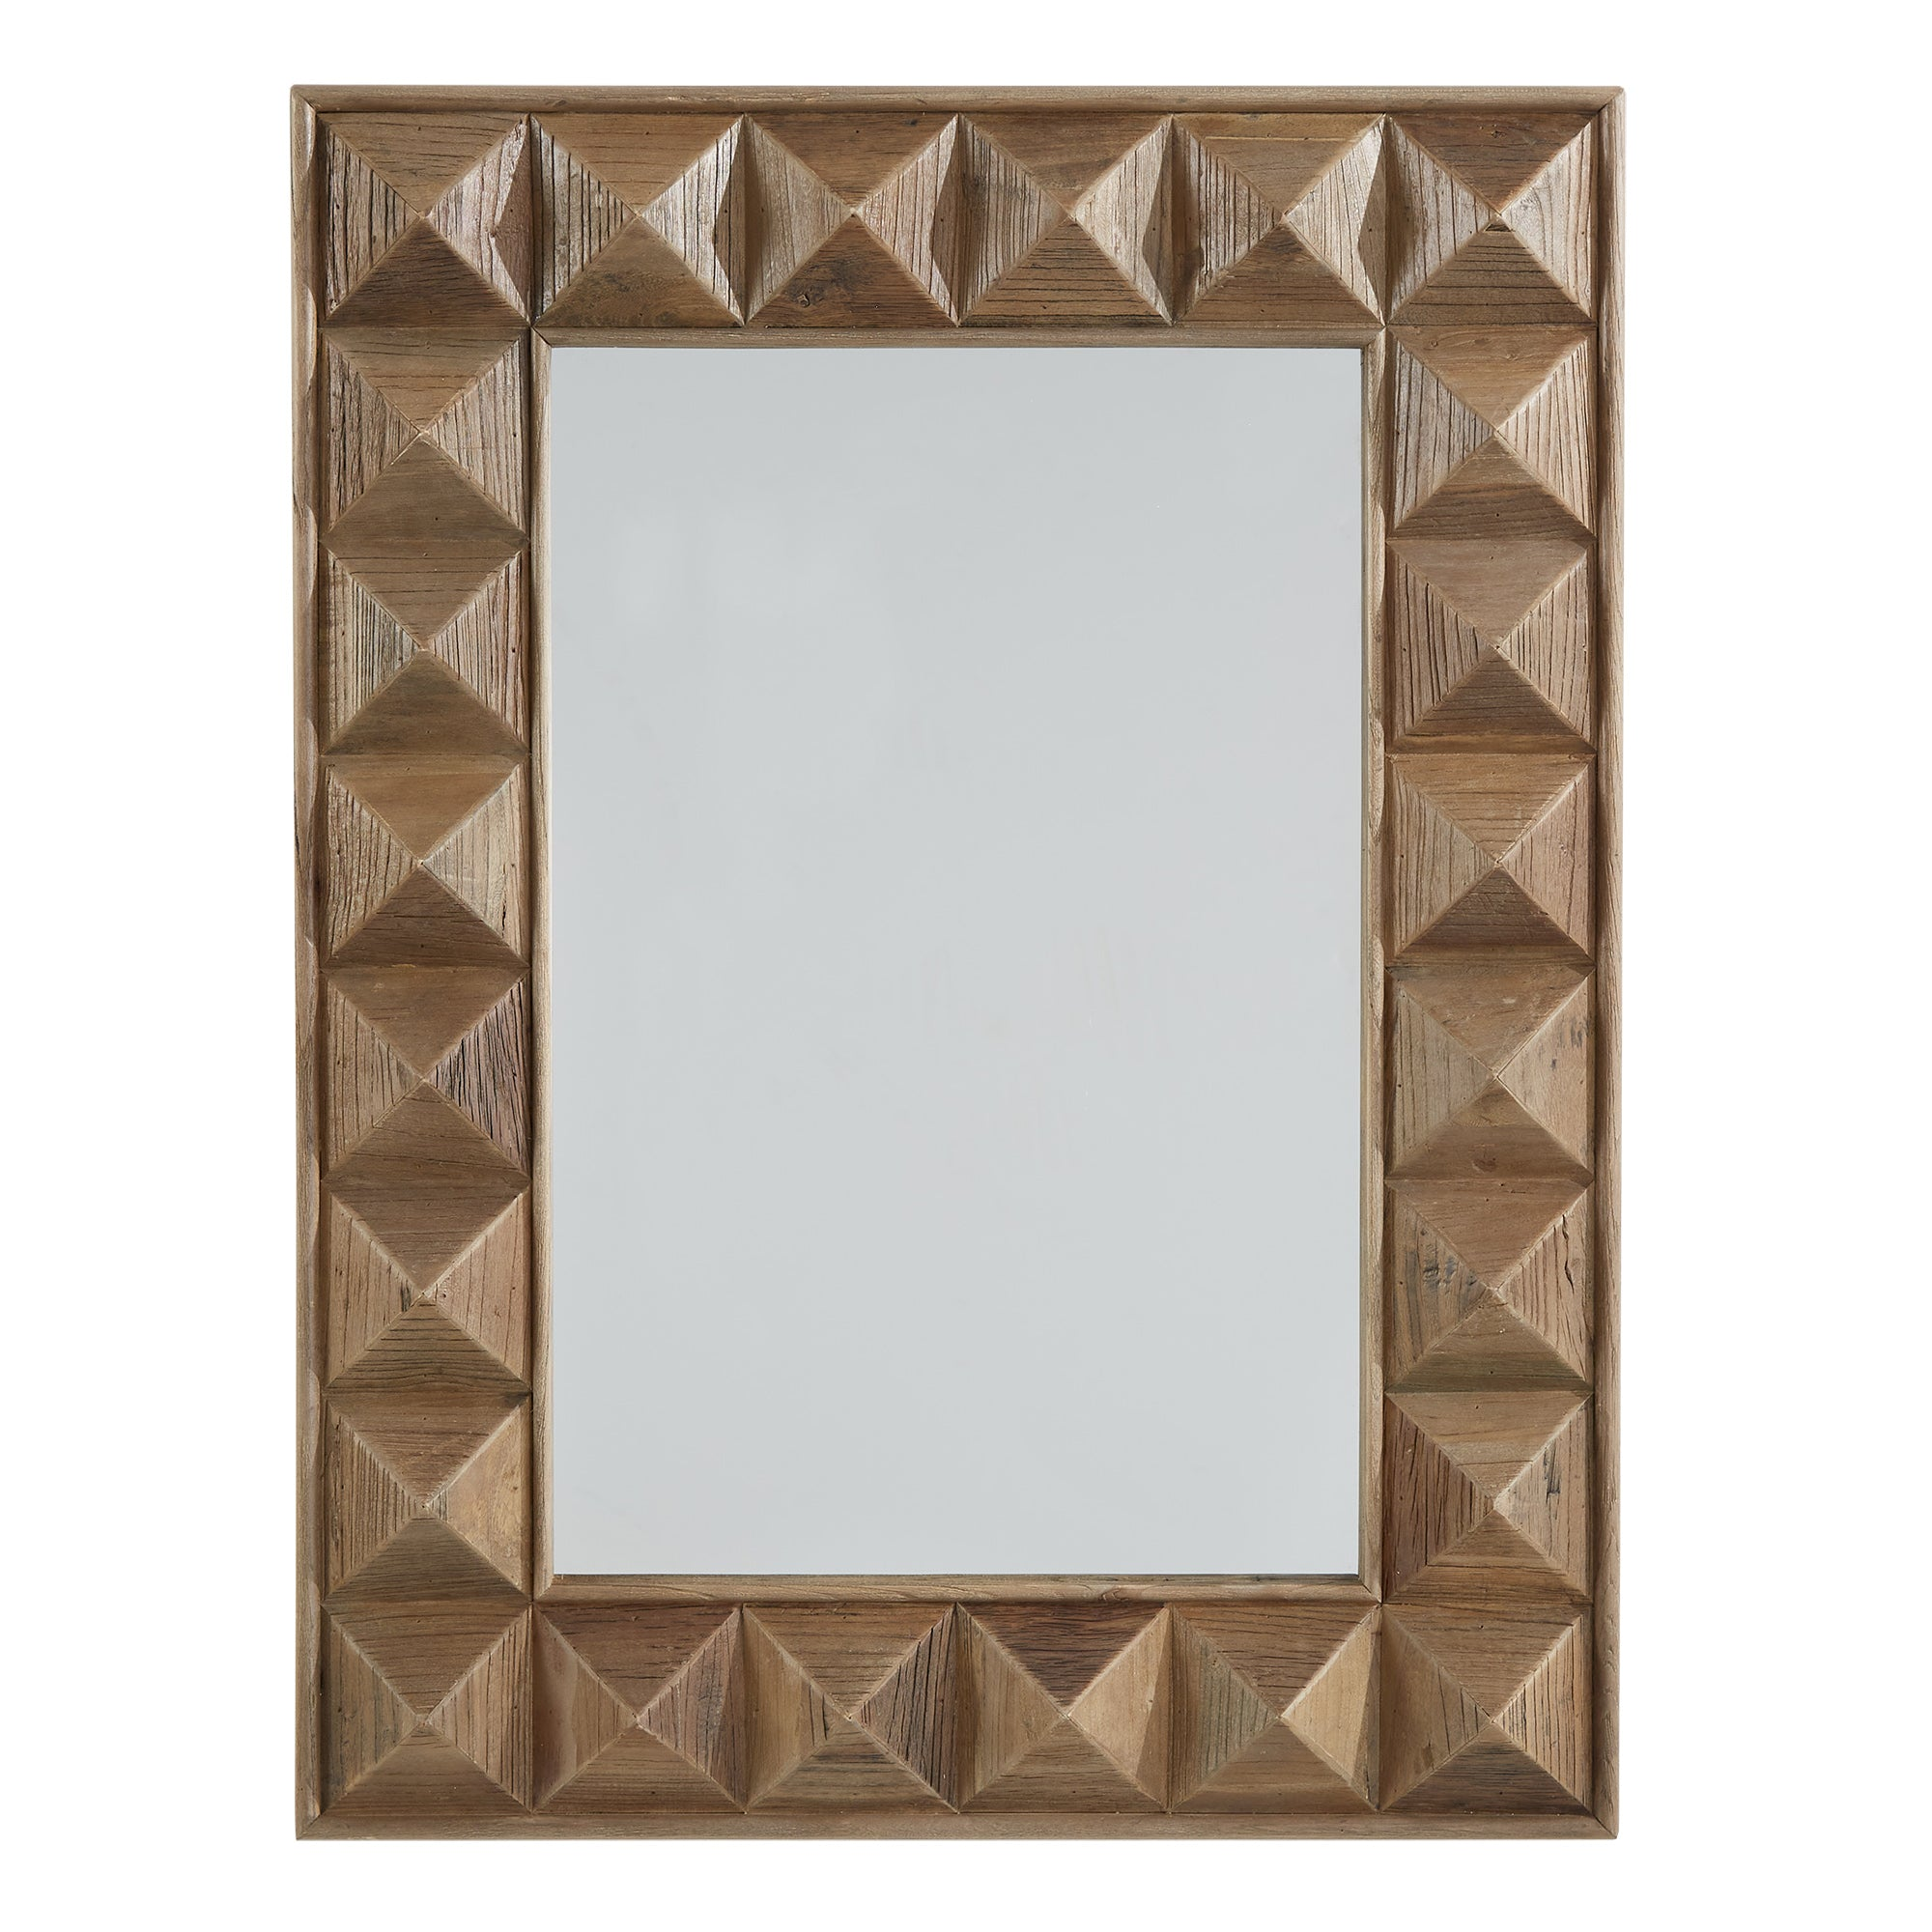 Rectangular Reclaimed Wood Geometric Faceted Wall Mirror